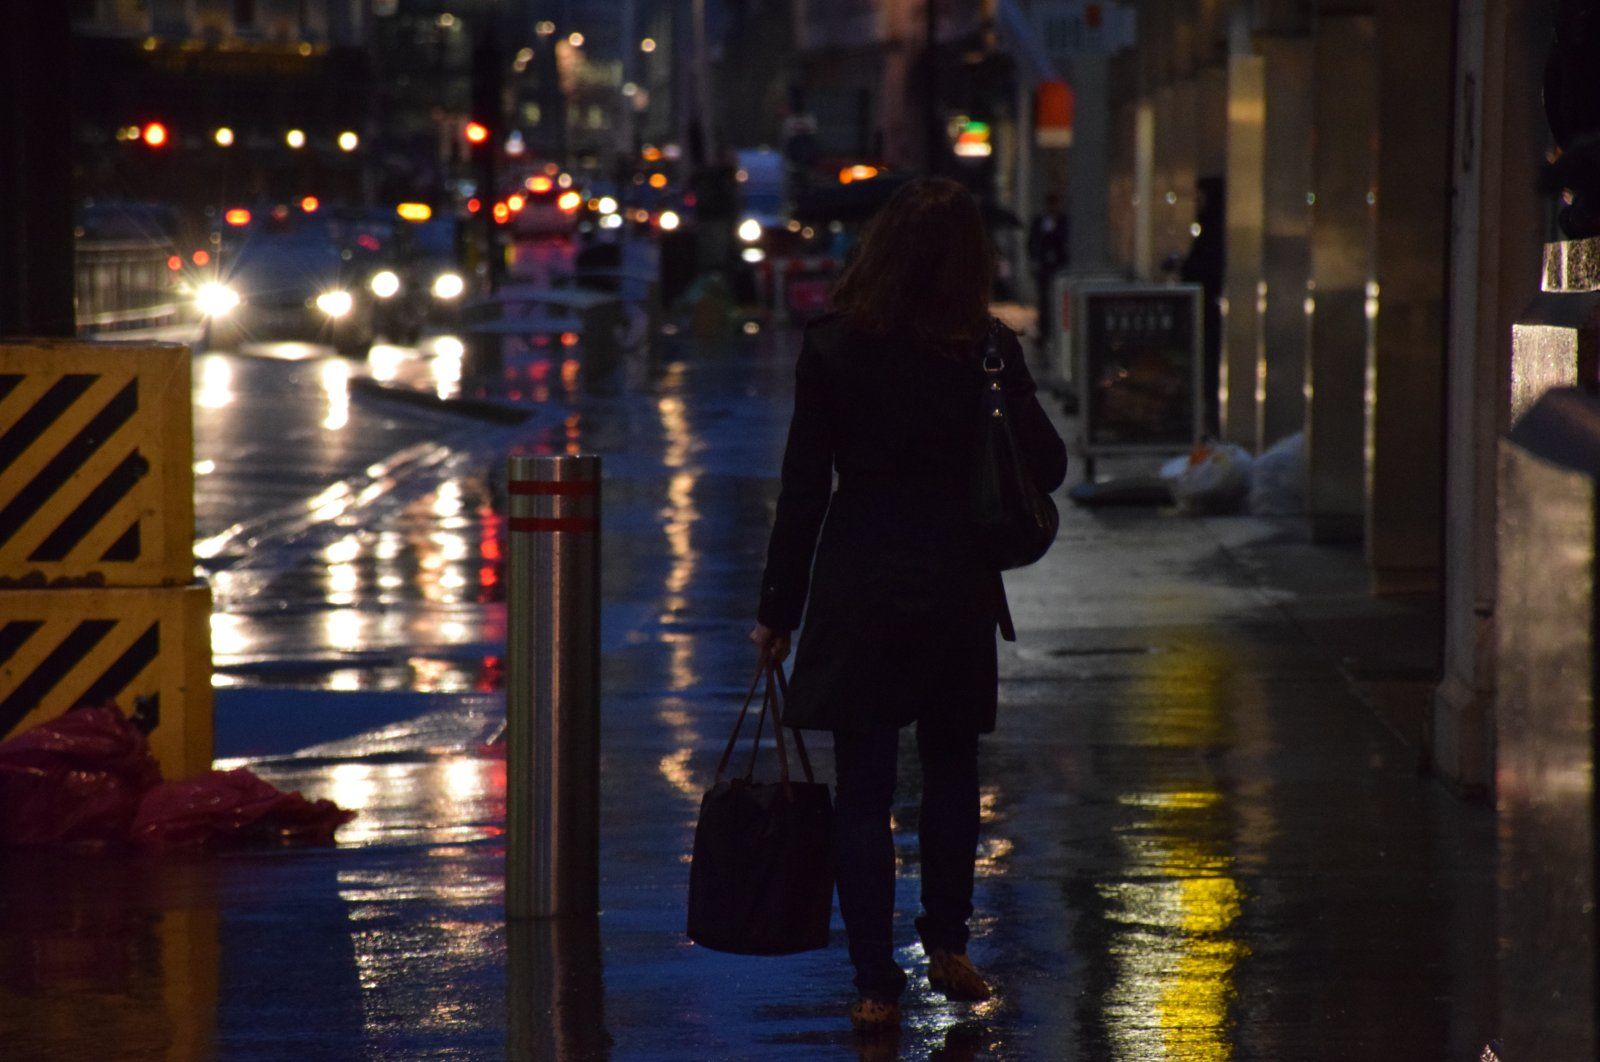 A woman walks on a wet sidewalk in a city at night. (Getty Images)